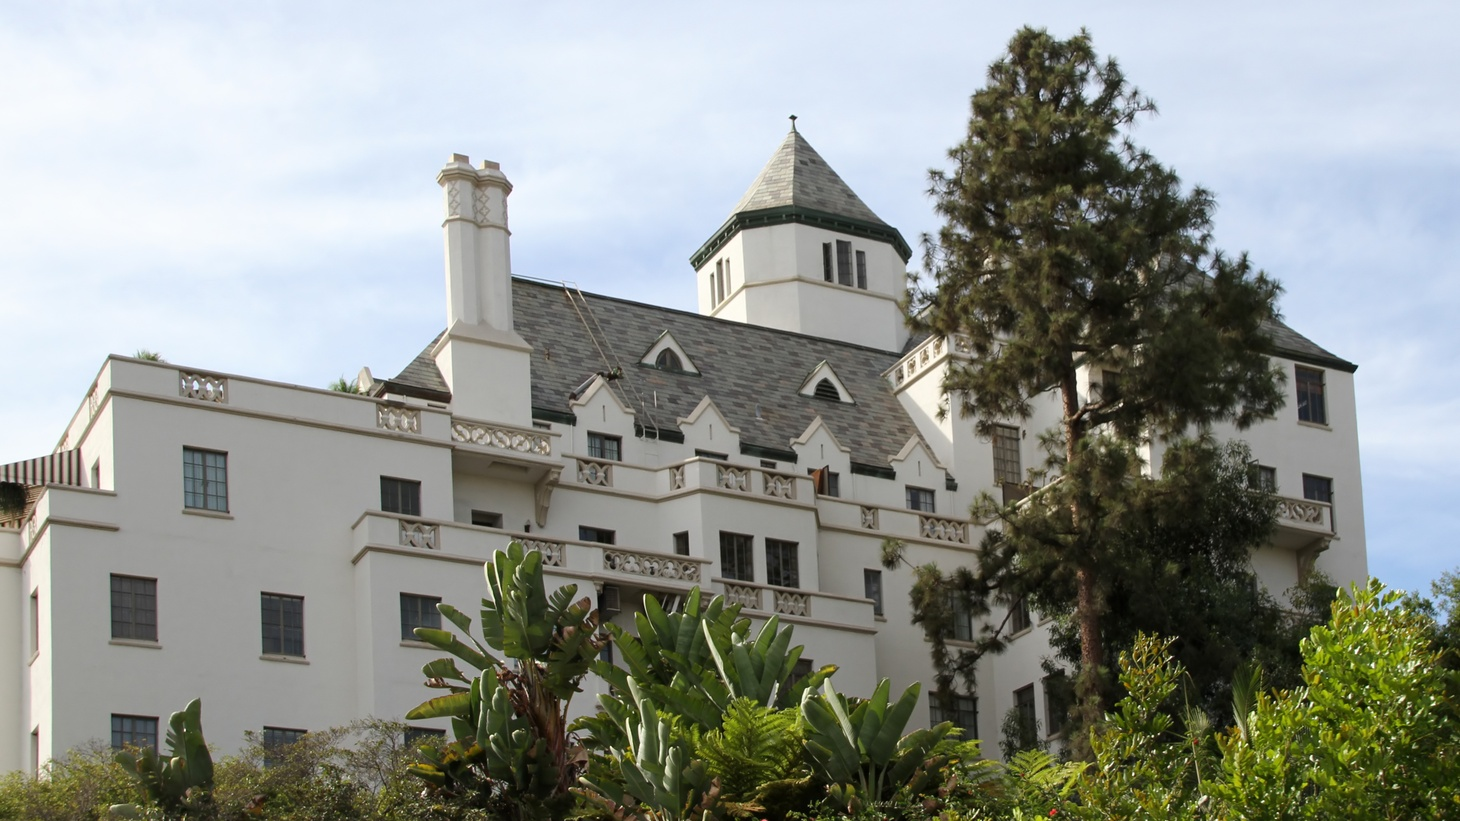 The Chateau Marmont opened in 1929 as an apartment building. Then it was converted into hotel rooms for celebrities.